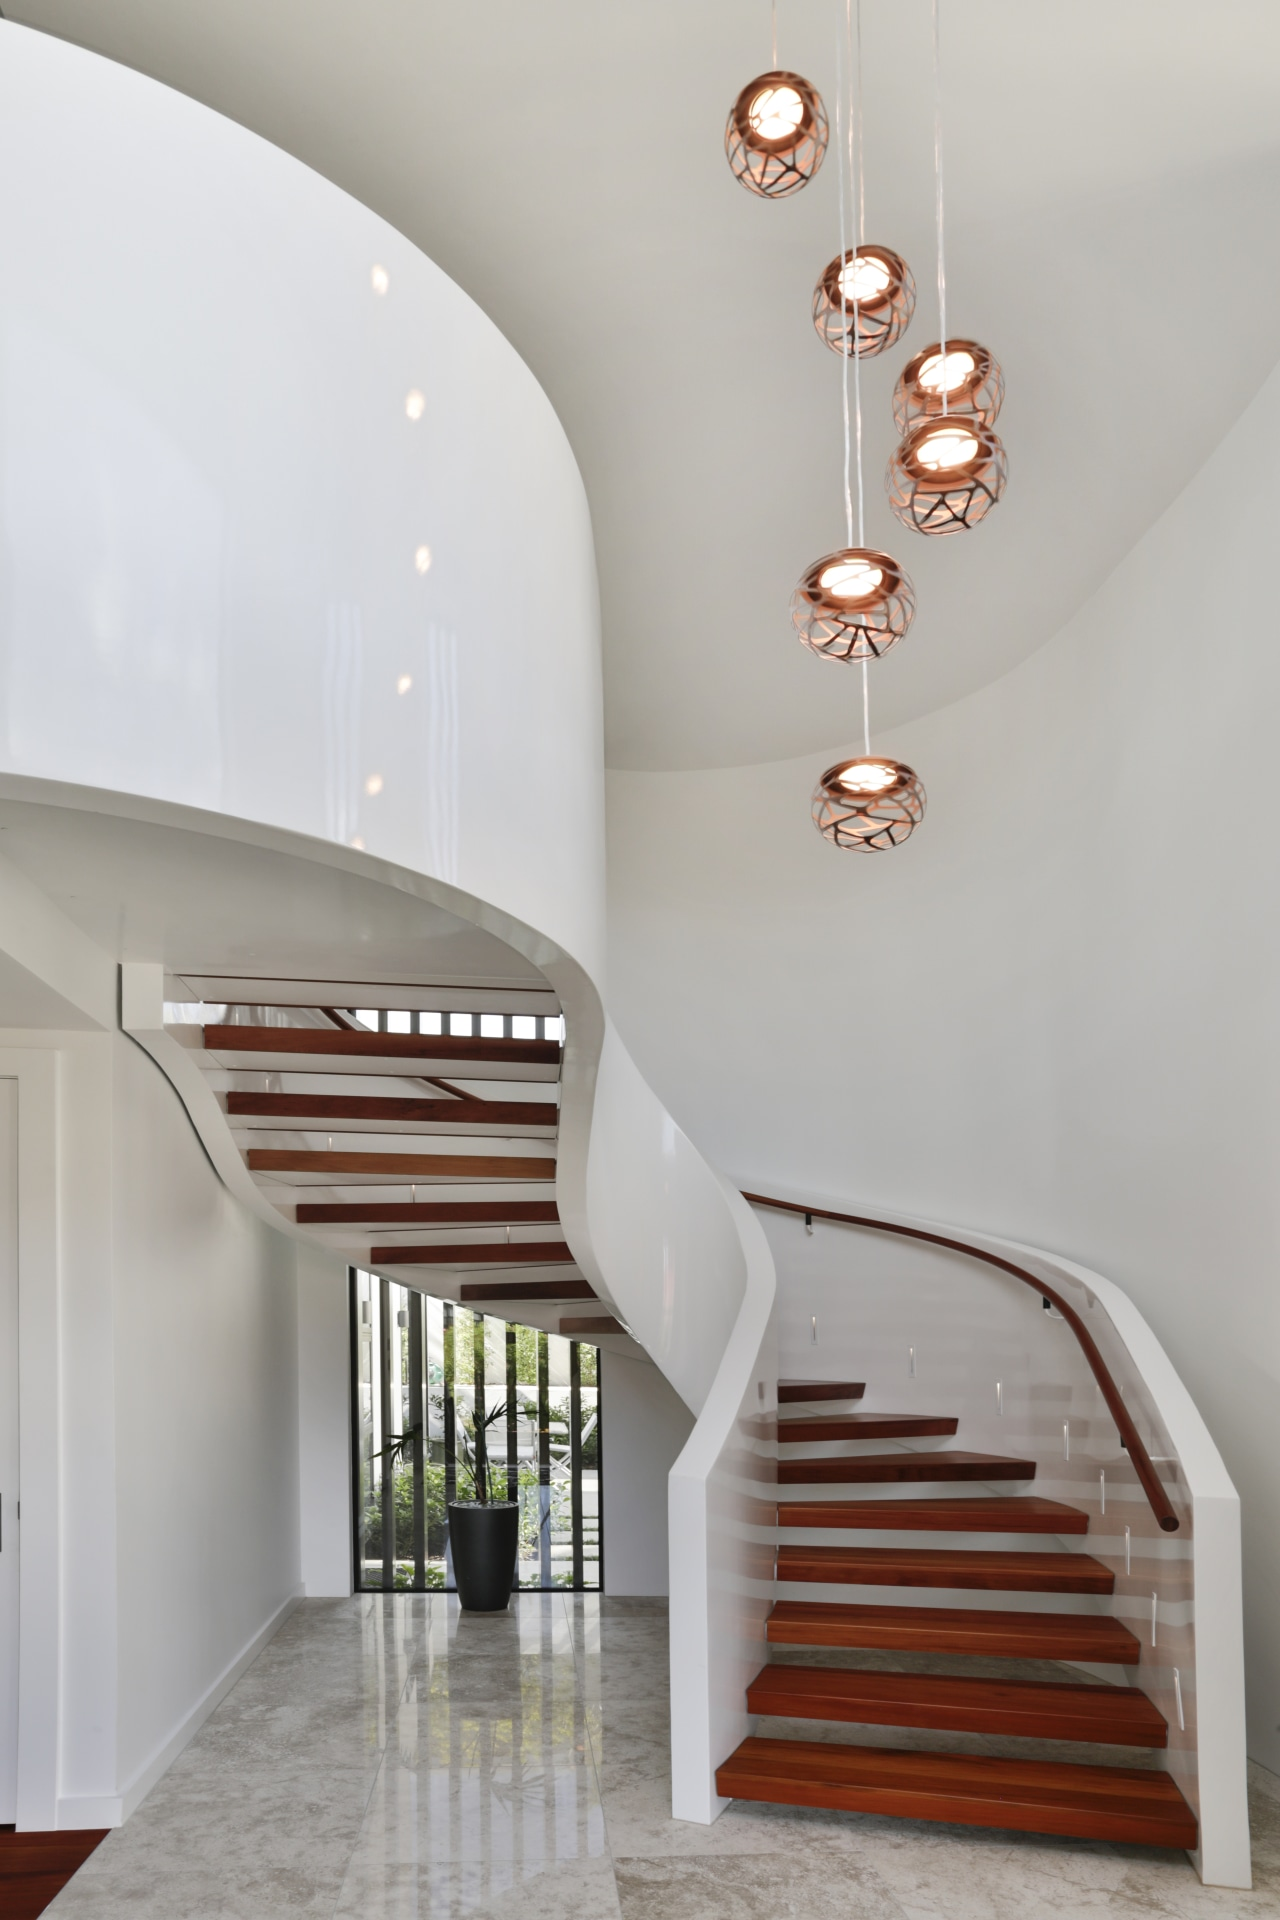 Inspired by a similar staircase on the cover gray